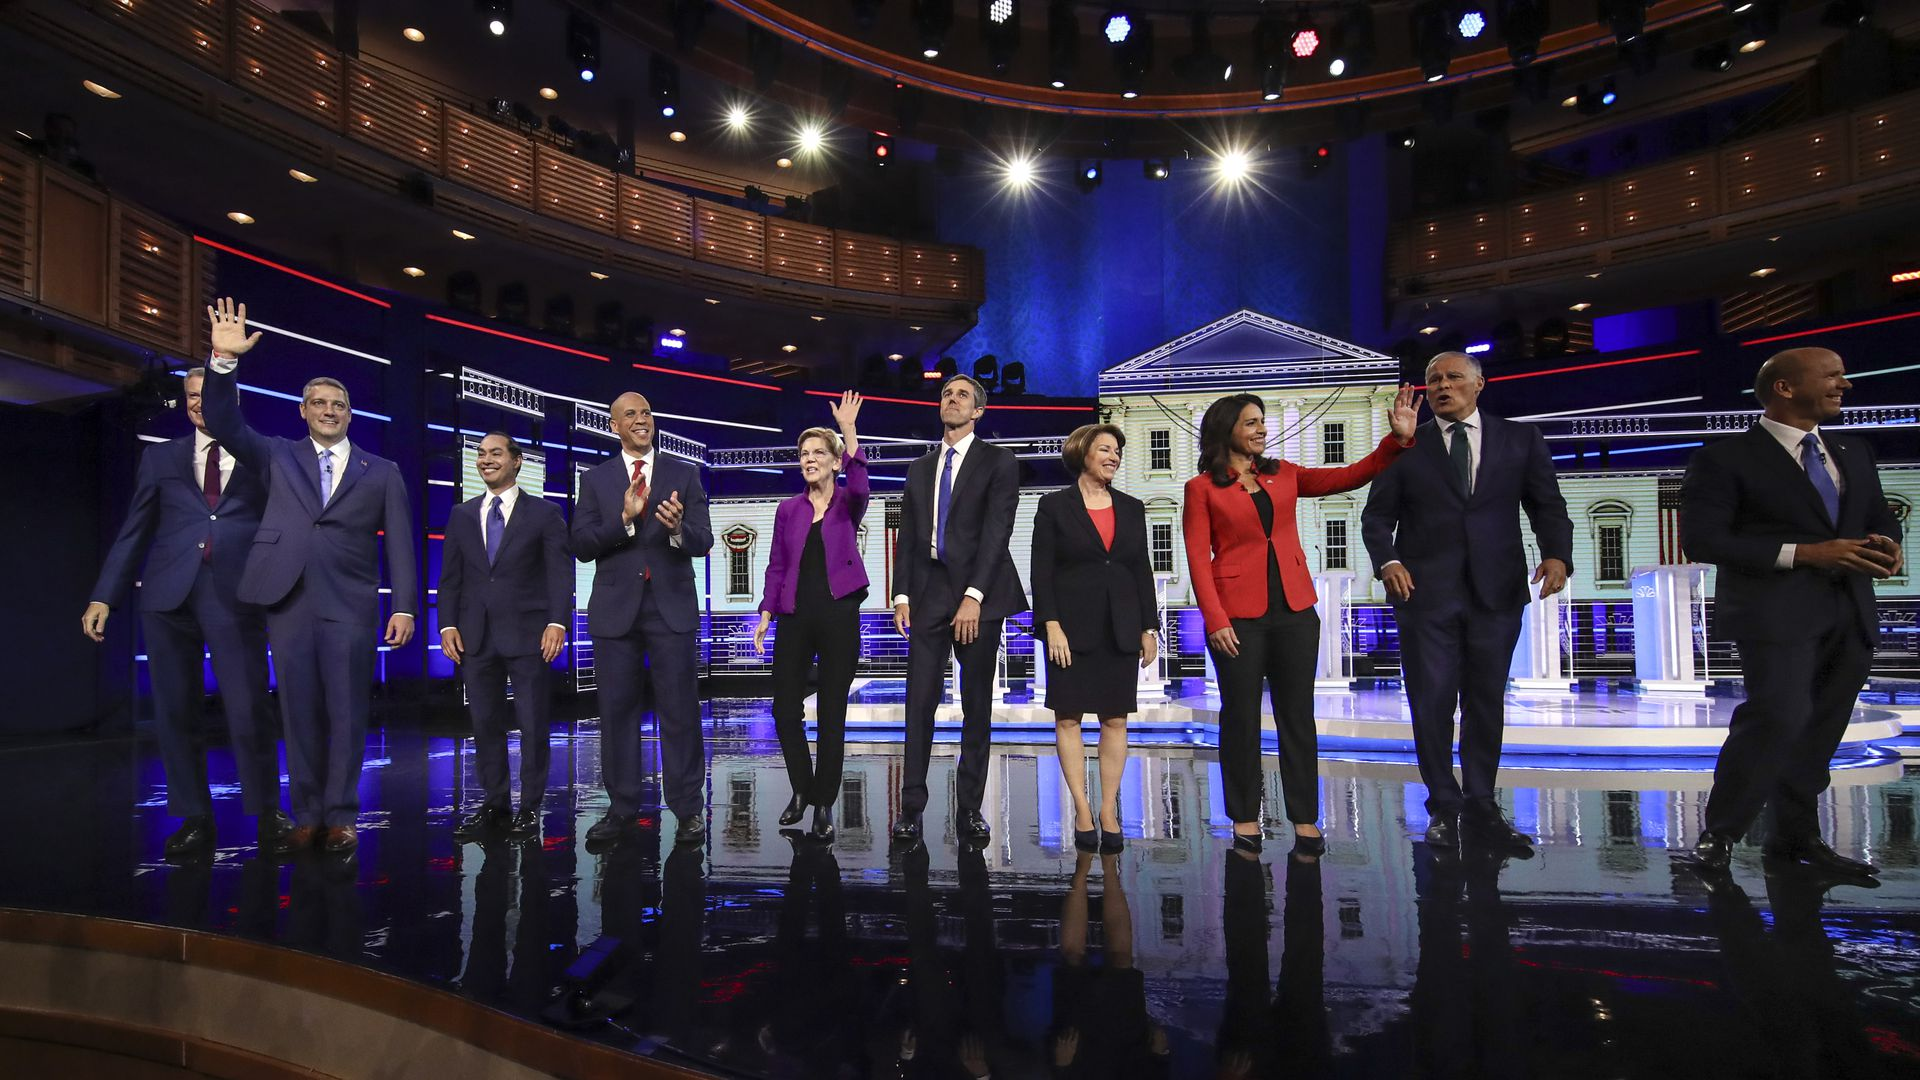 Some of the 2020 candidates during the first round of primary debates